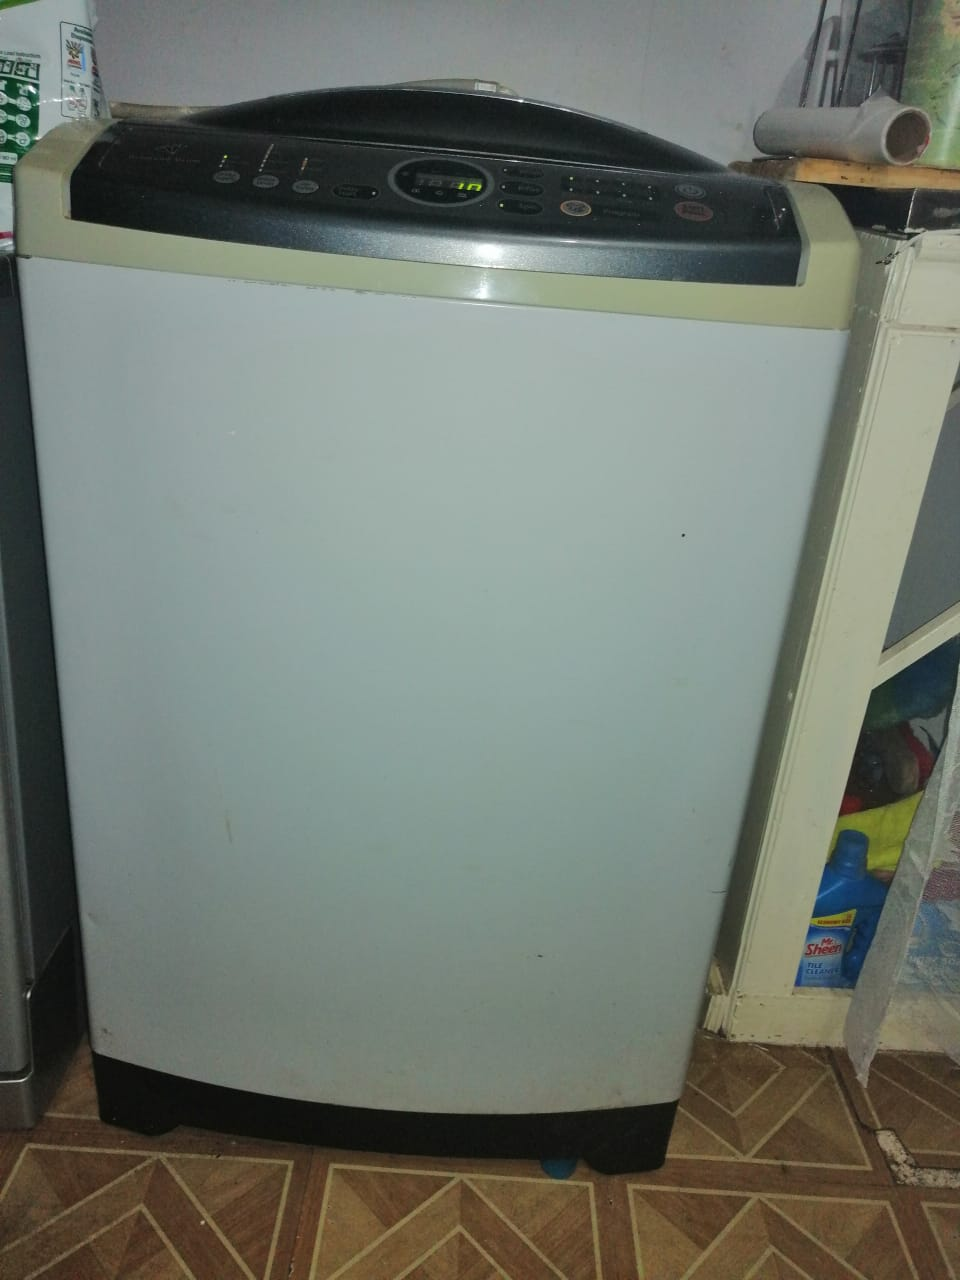 Samsung washing machine. 13kg. excellent condition. Can be delivered in Bloemfontein or Pretoria.